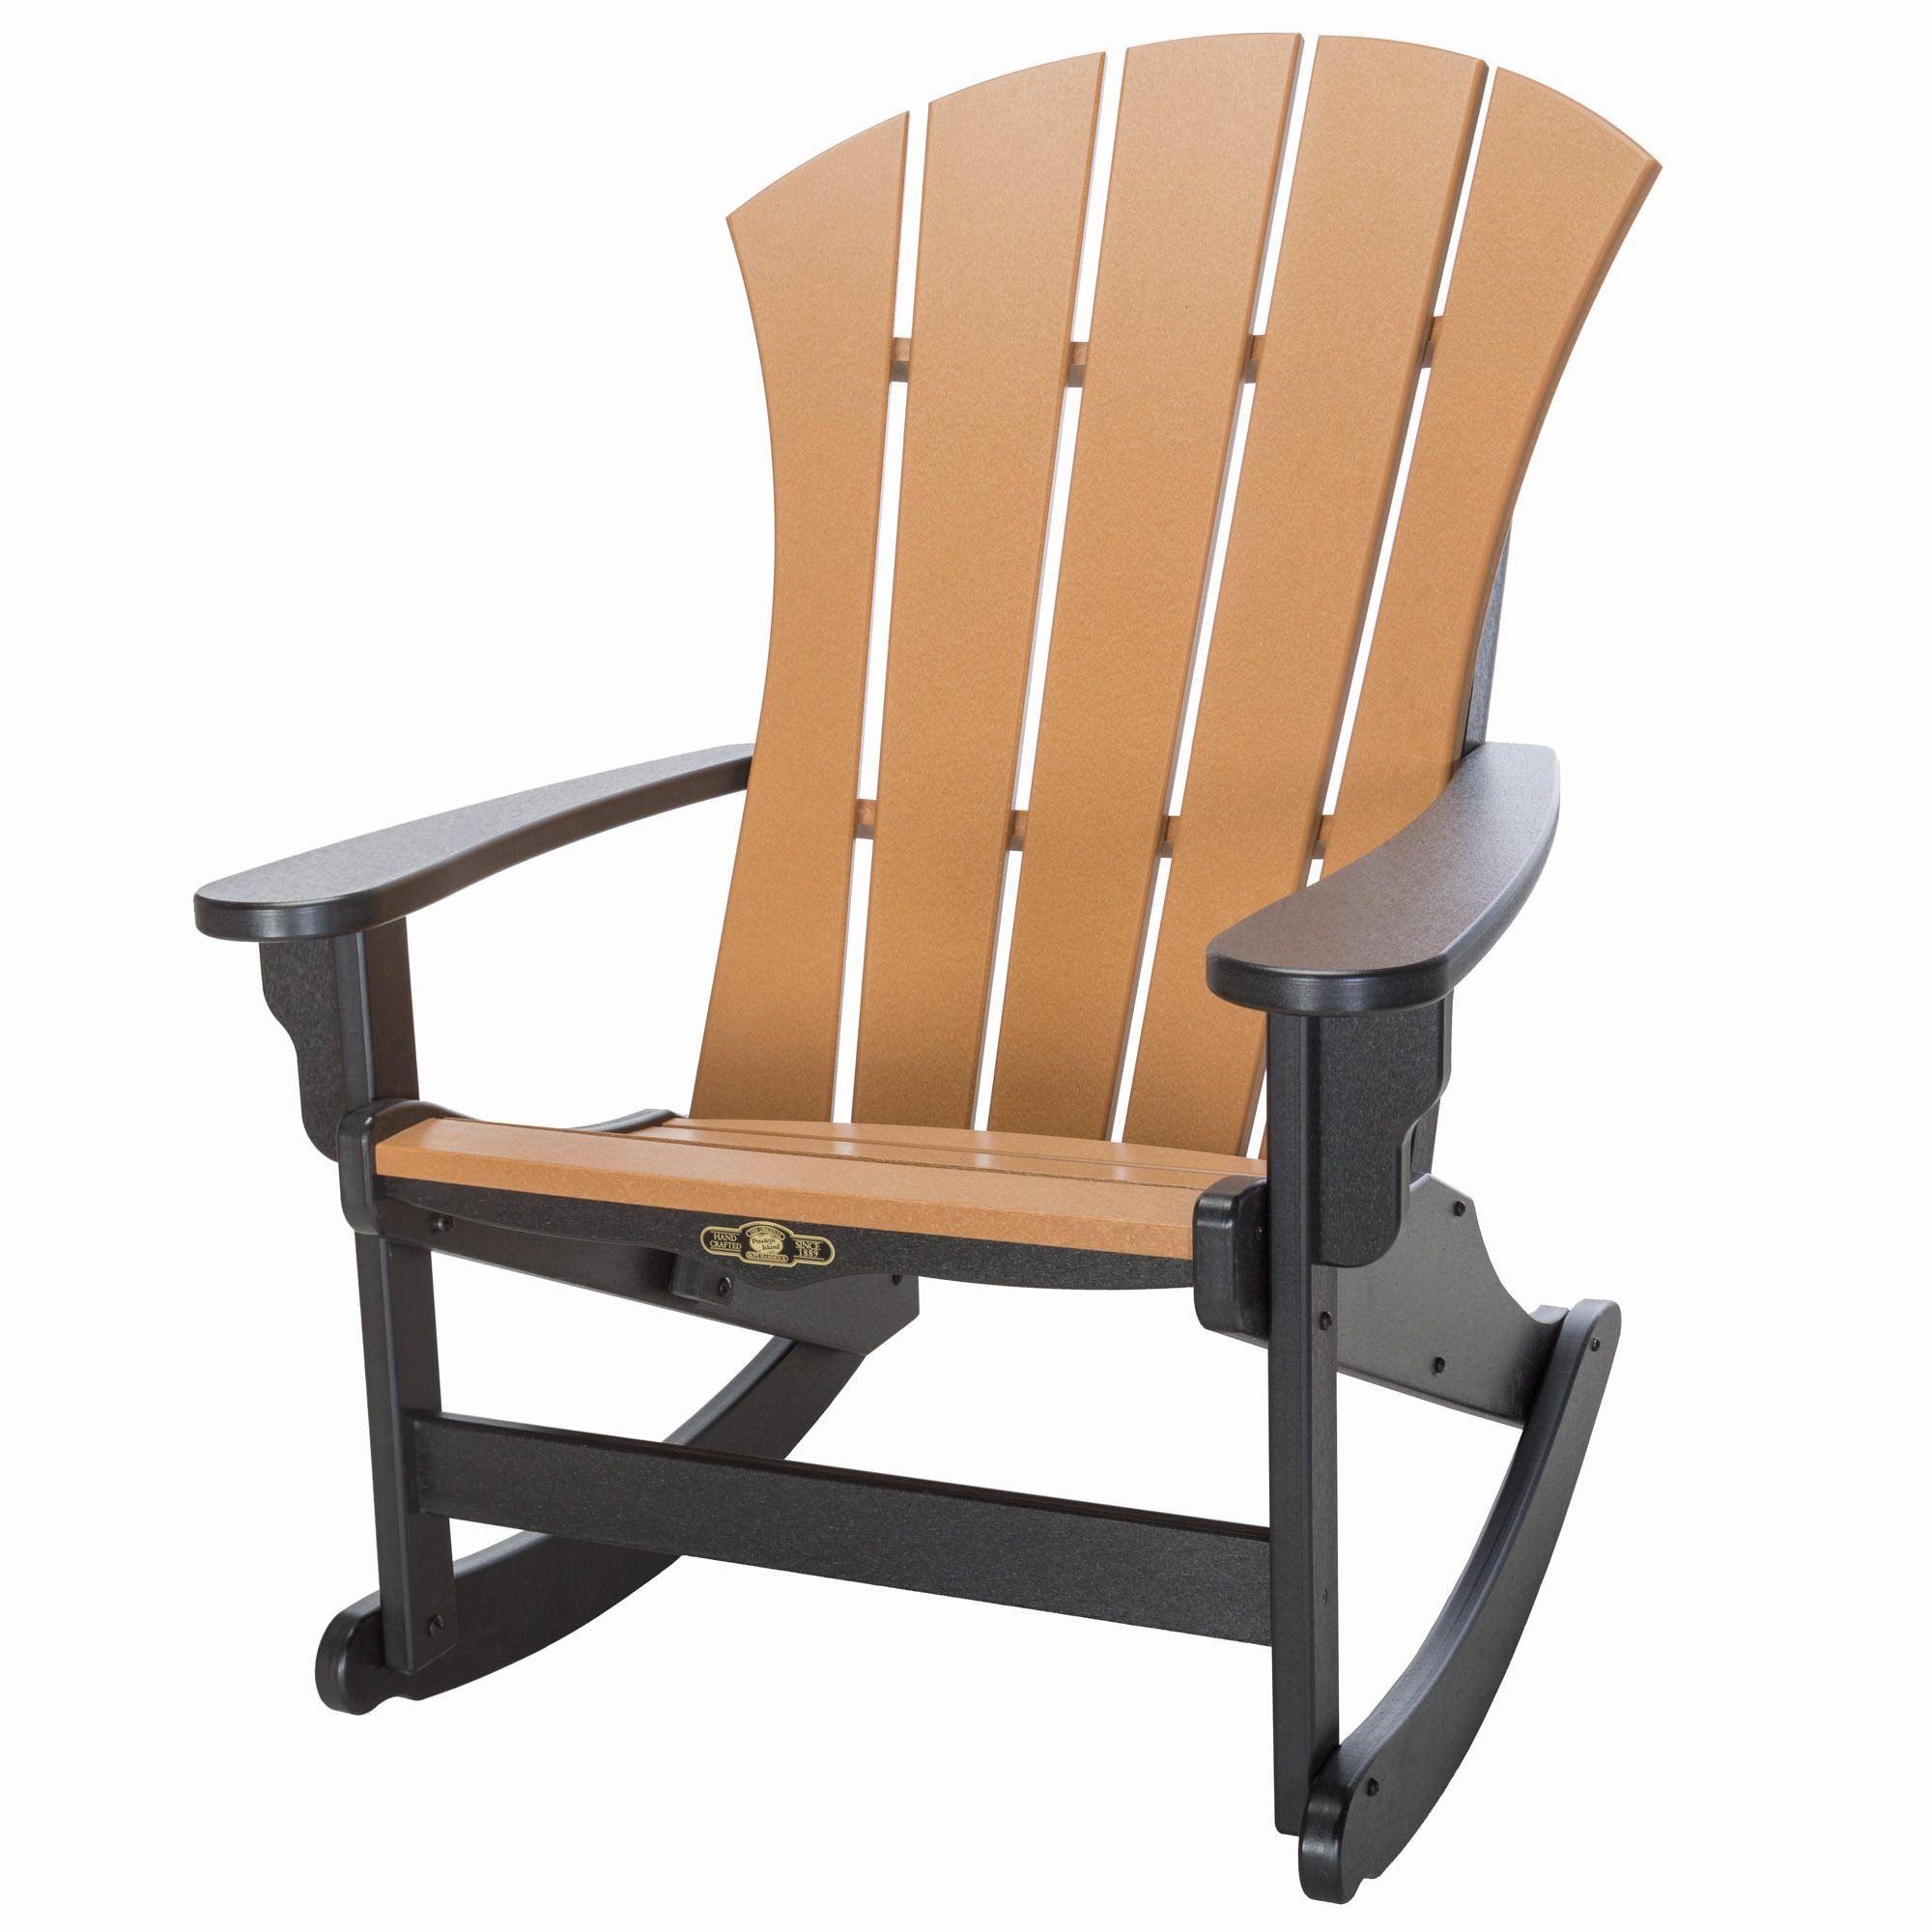 Trex Rocking Chairs Shop Durawood Sunrise Adirondack Rockers On Sale